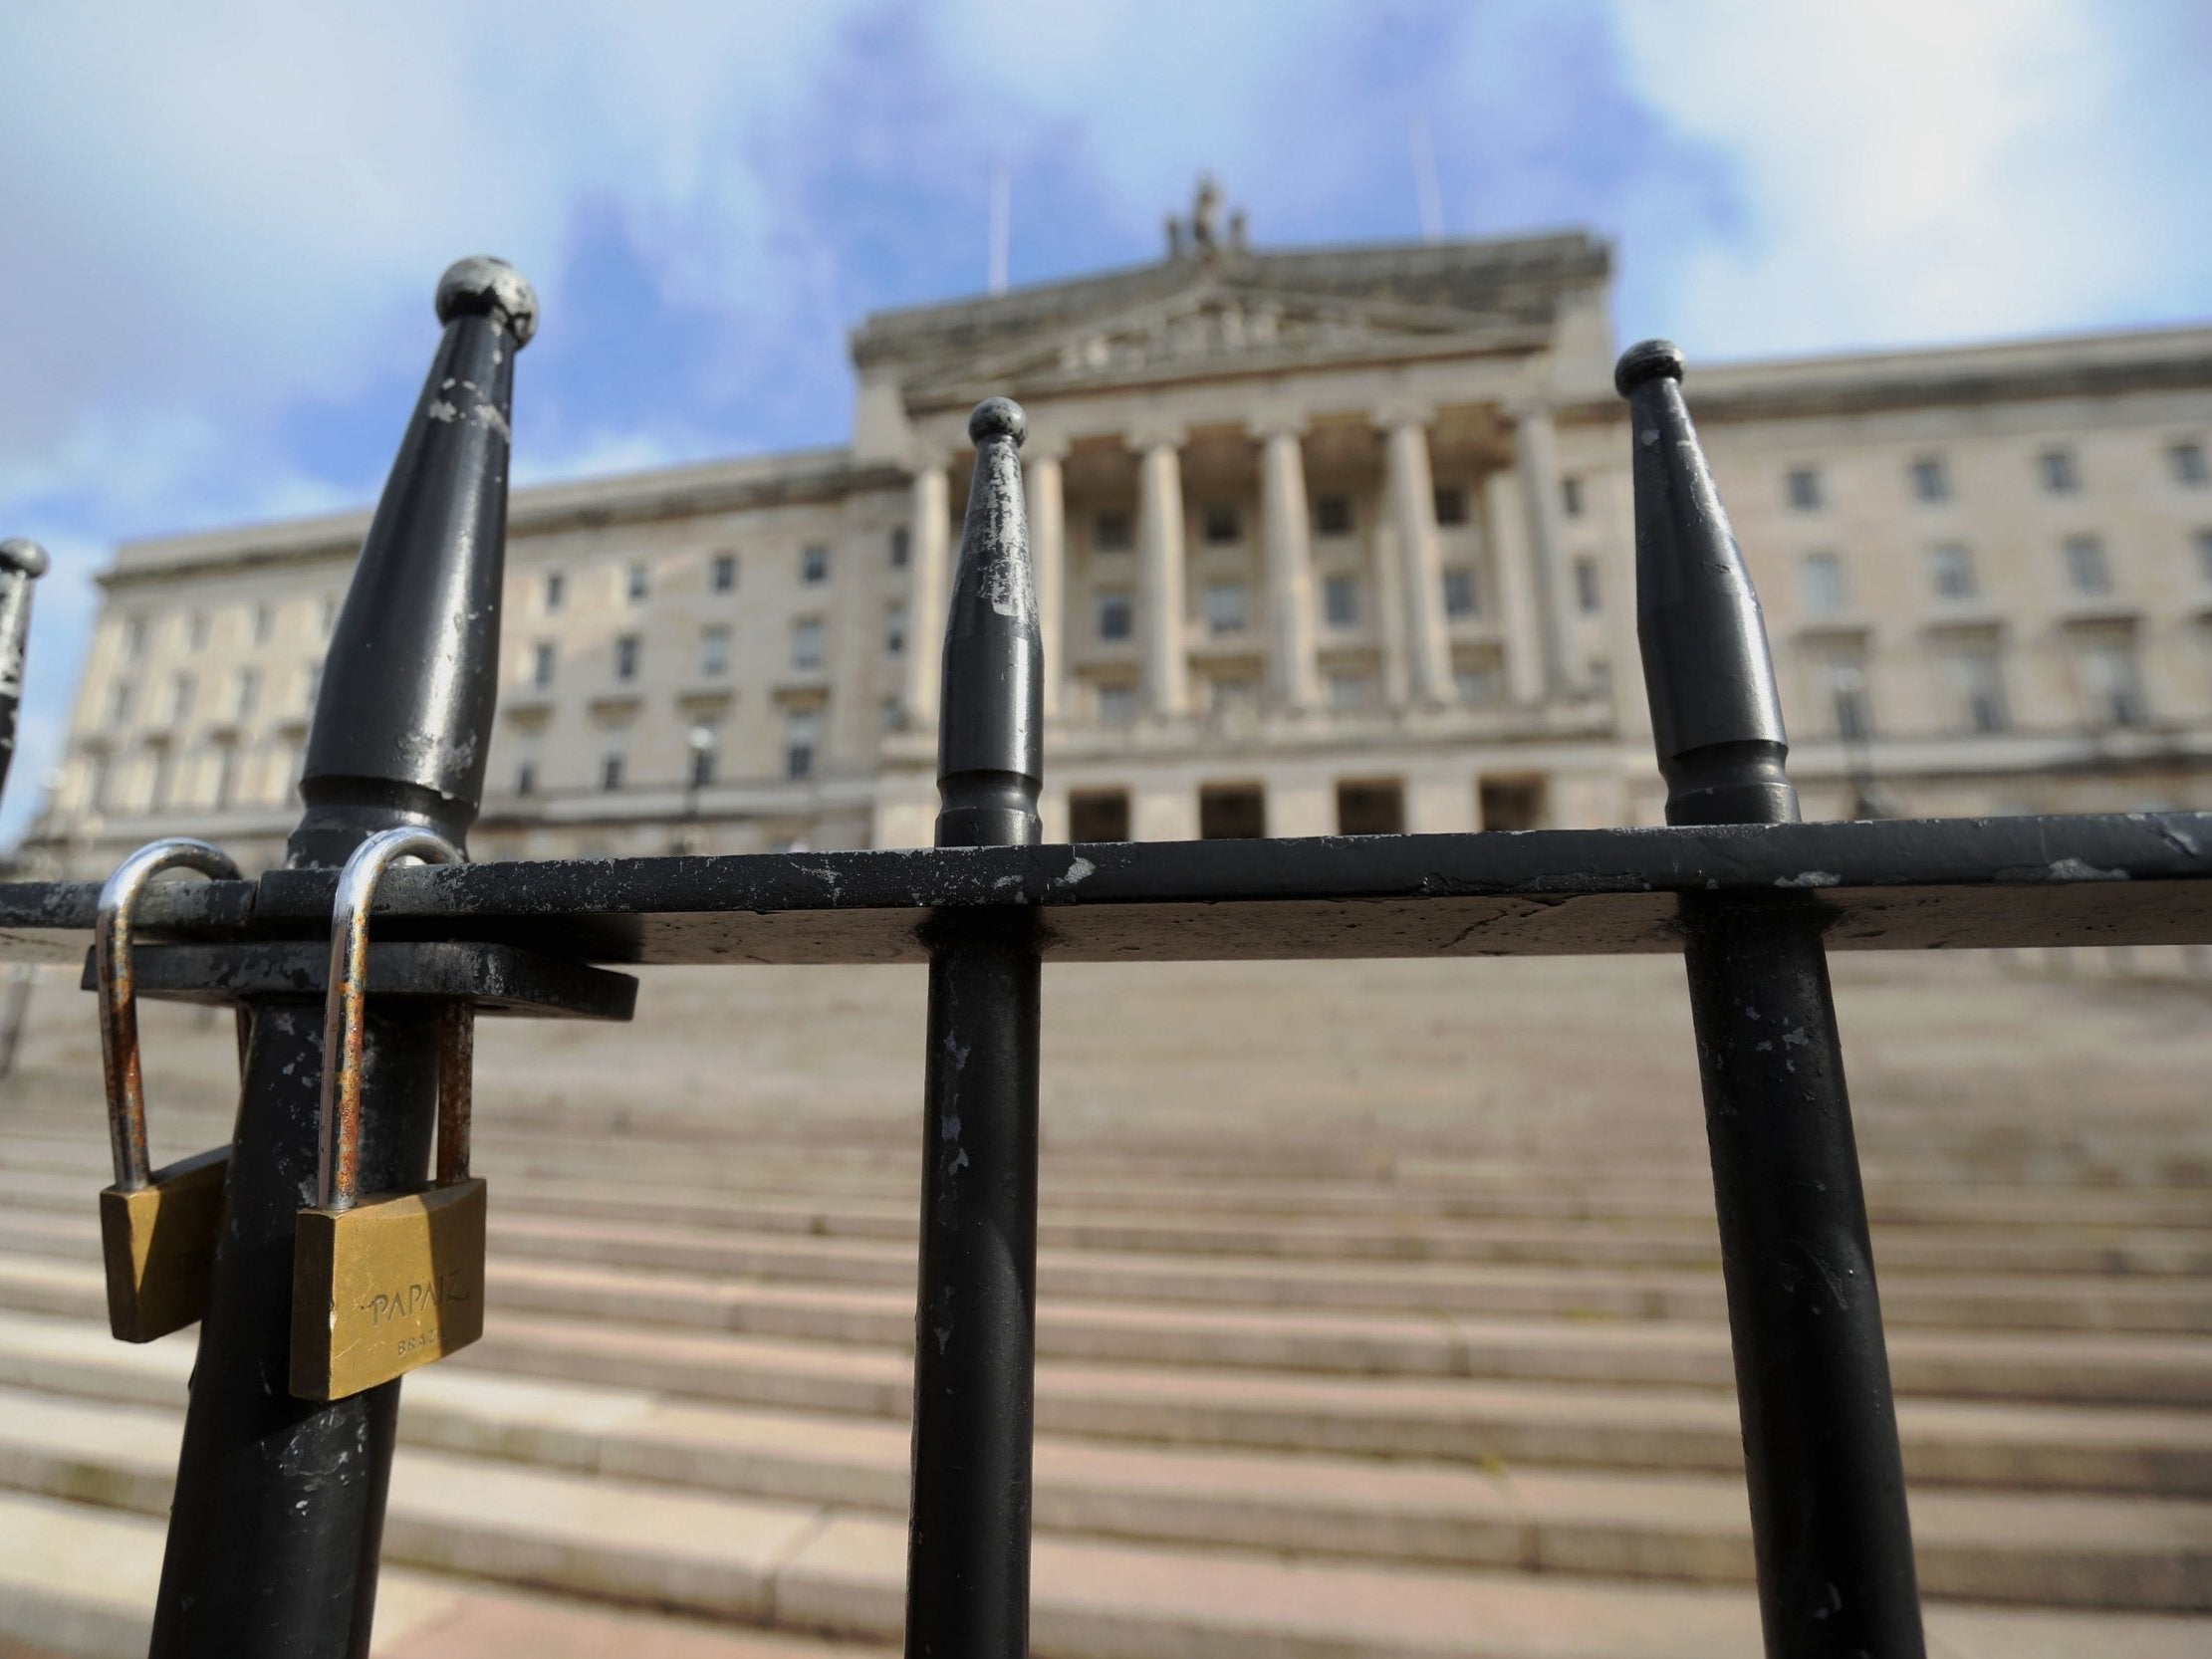 Northern Ireland abortion law: Stormont to to discuss decriminalisation after petition